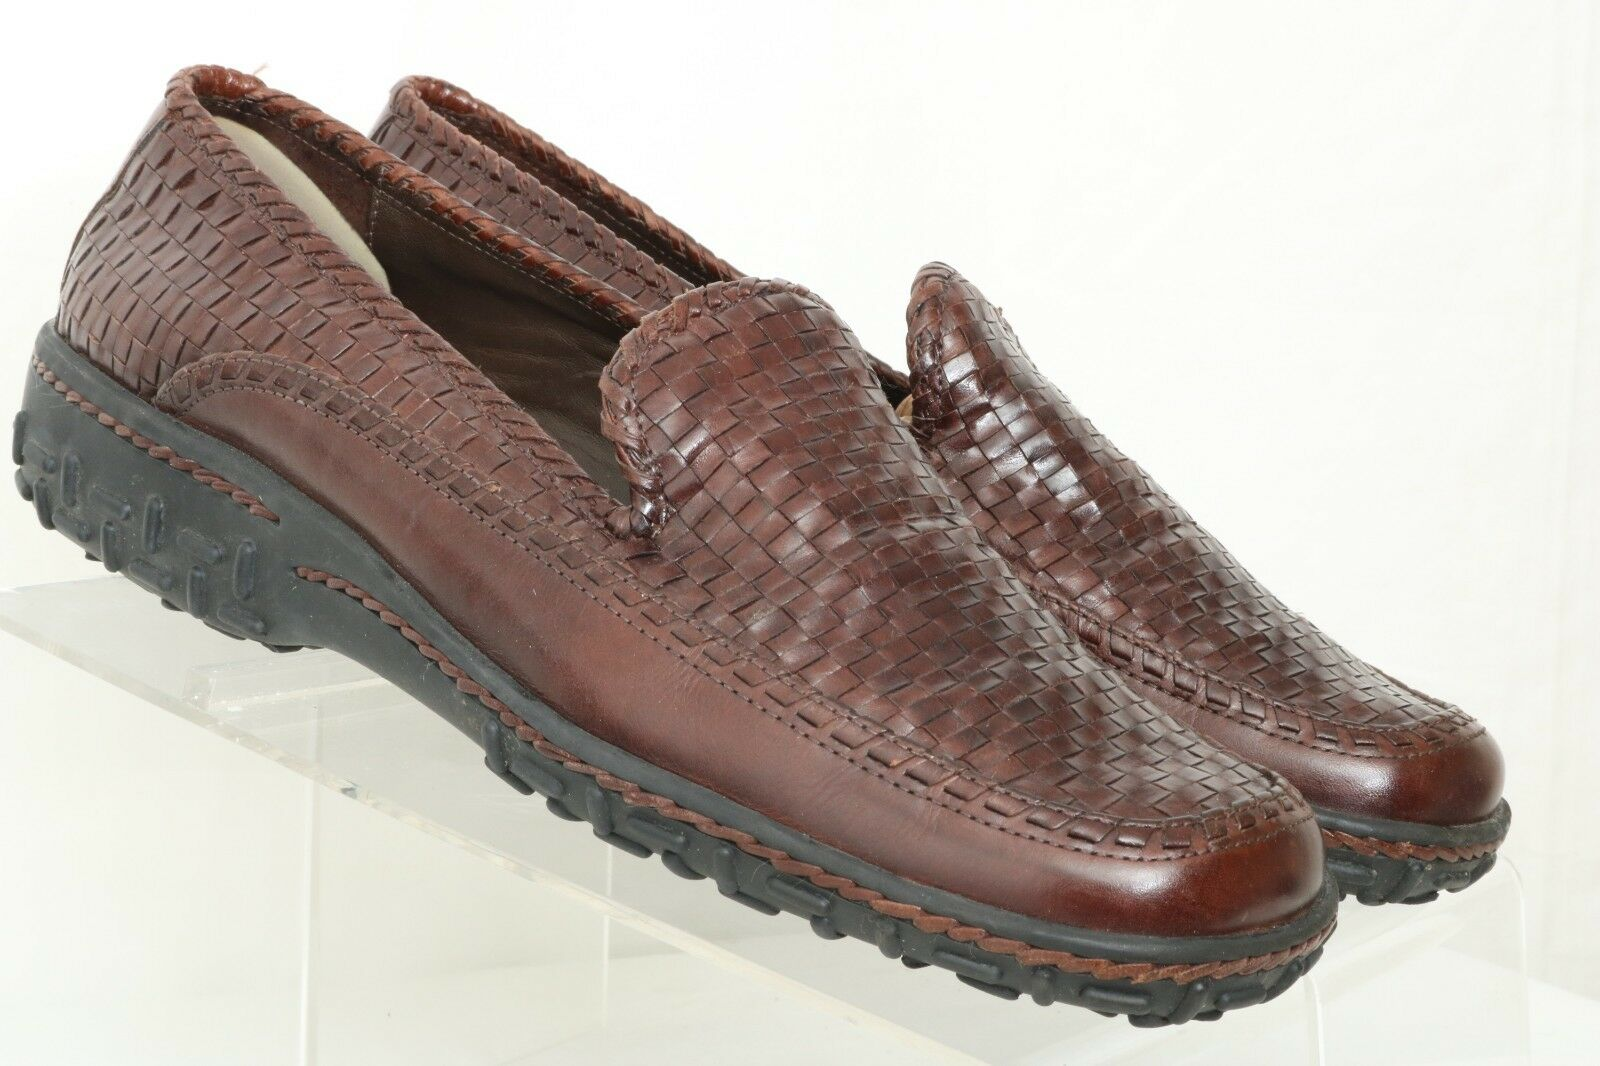 Cole Haan Brown Woven Wedge Casual Slip On Loafers 202896 Women's US 9.5 AA